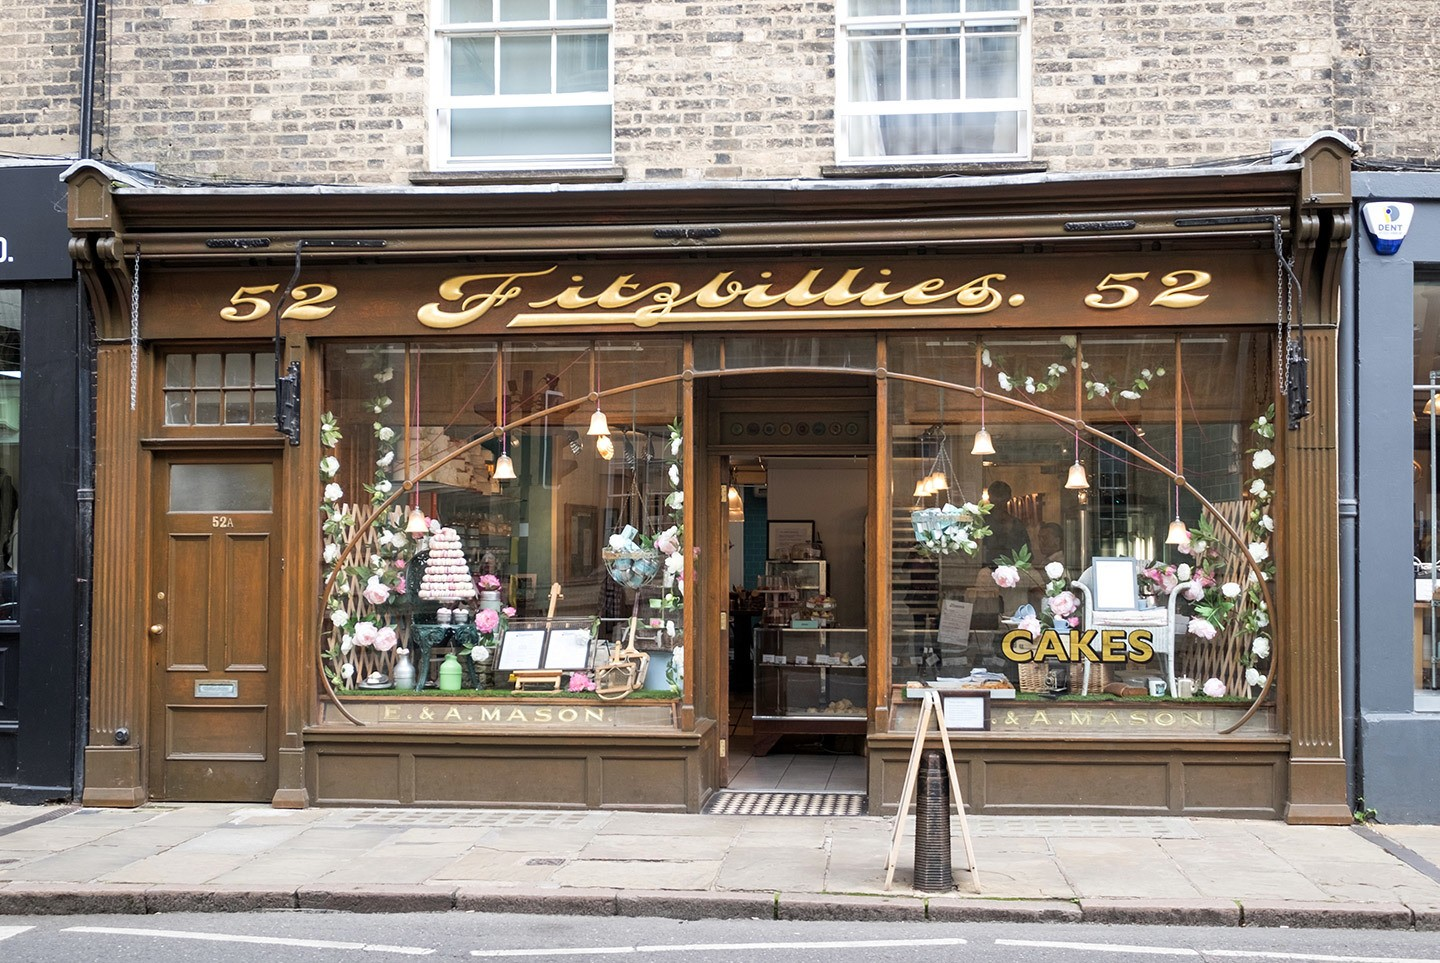 Fitzbillies Café in Cambridge